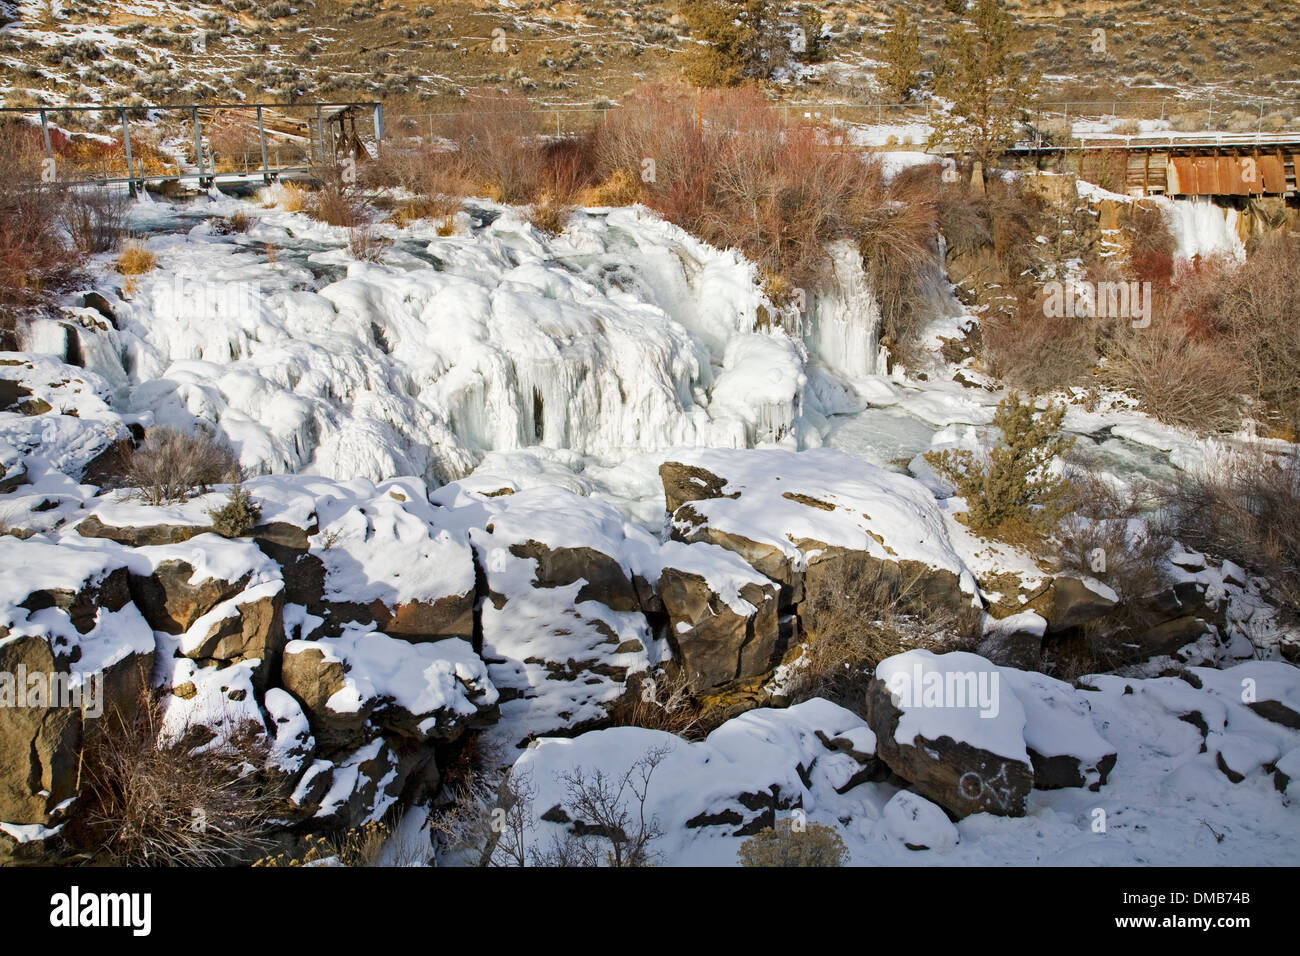 Clines Falls on the Deschutes River in central oregon, nearly frozen solid in mid-December Stock Photo